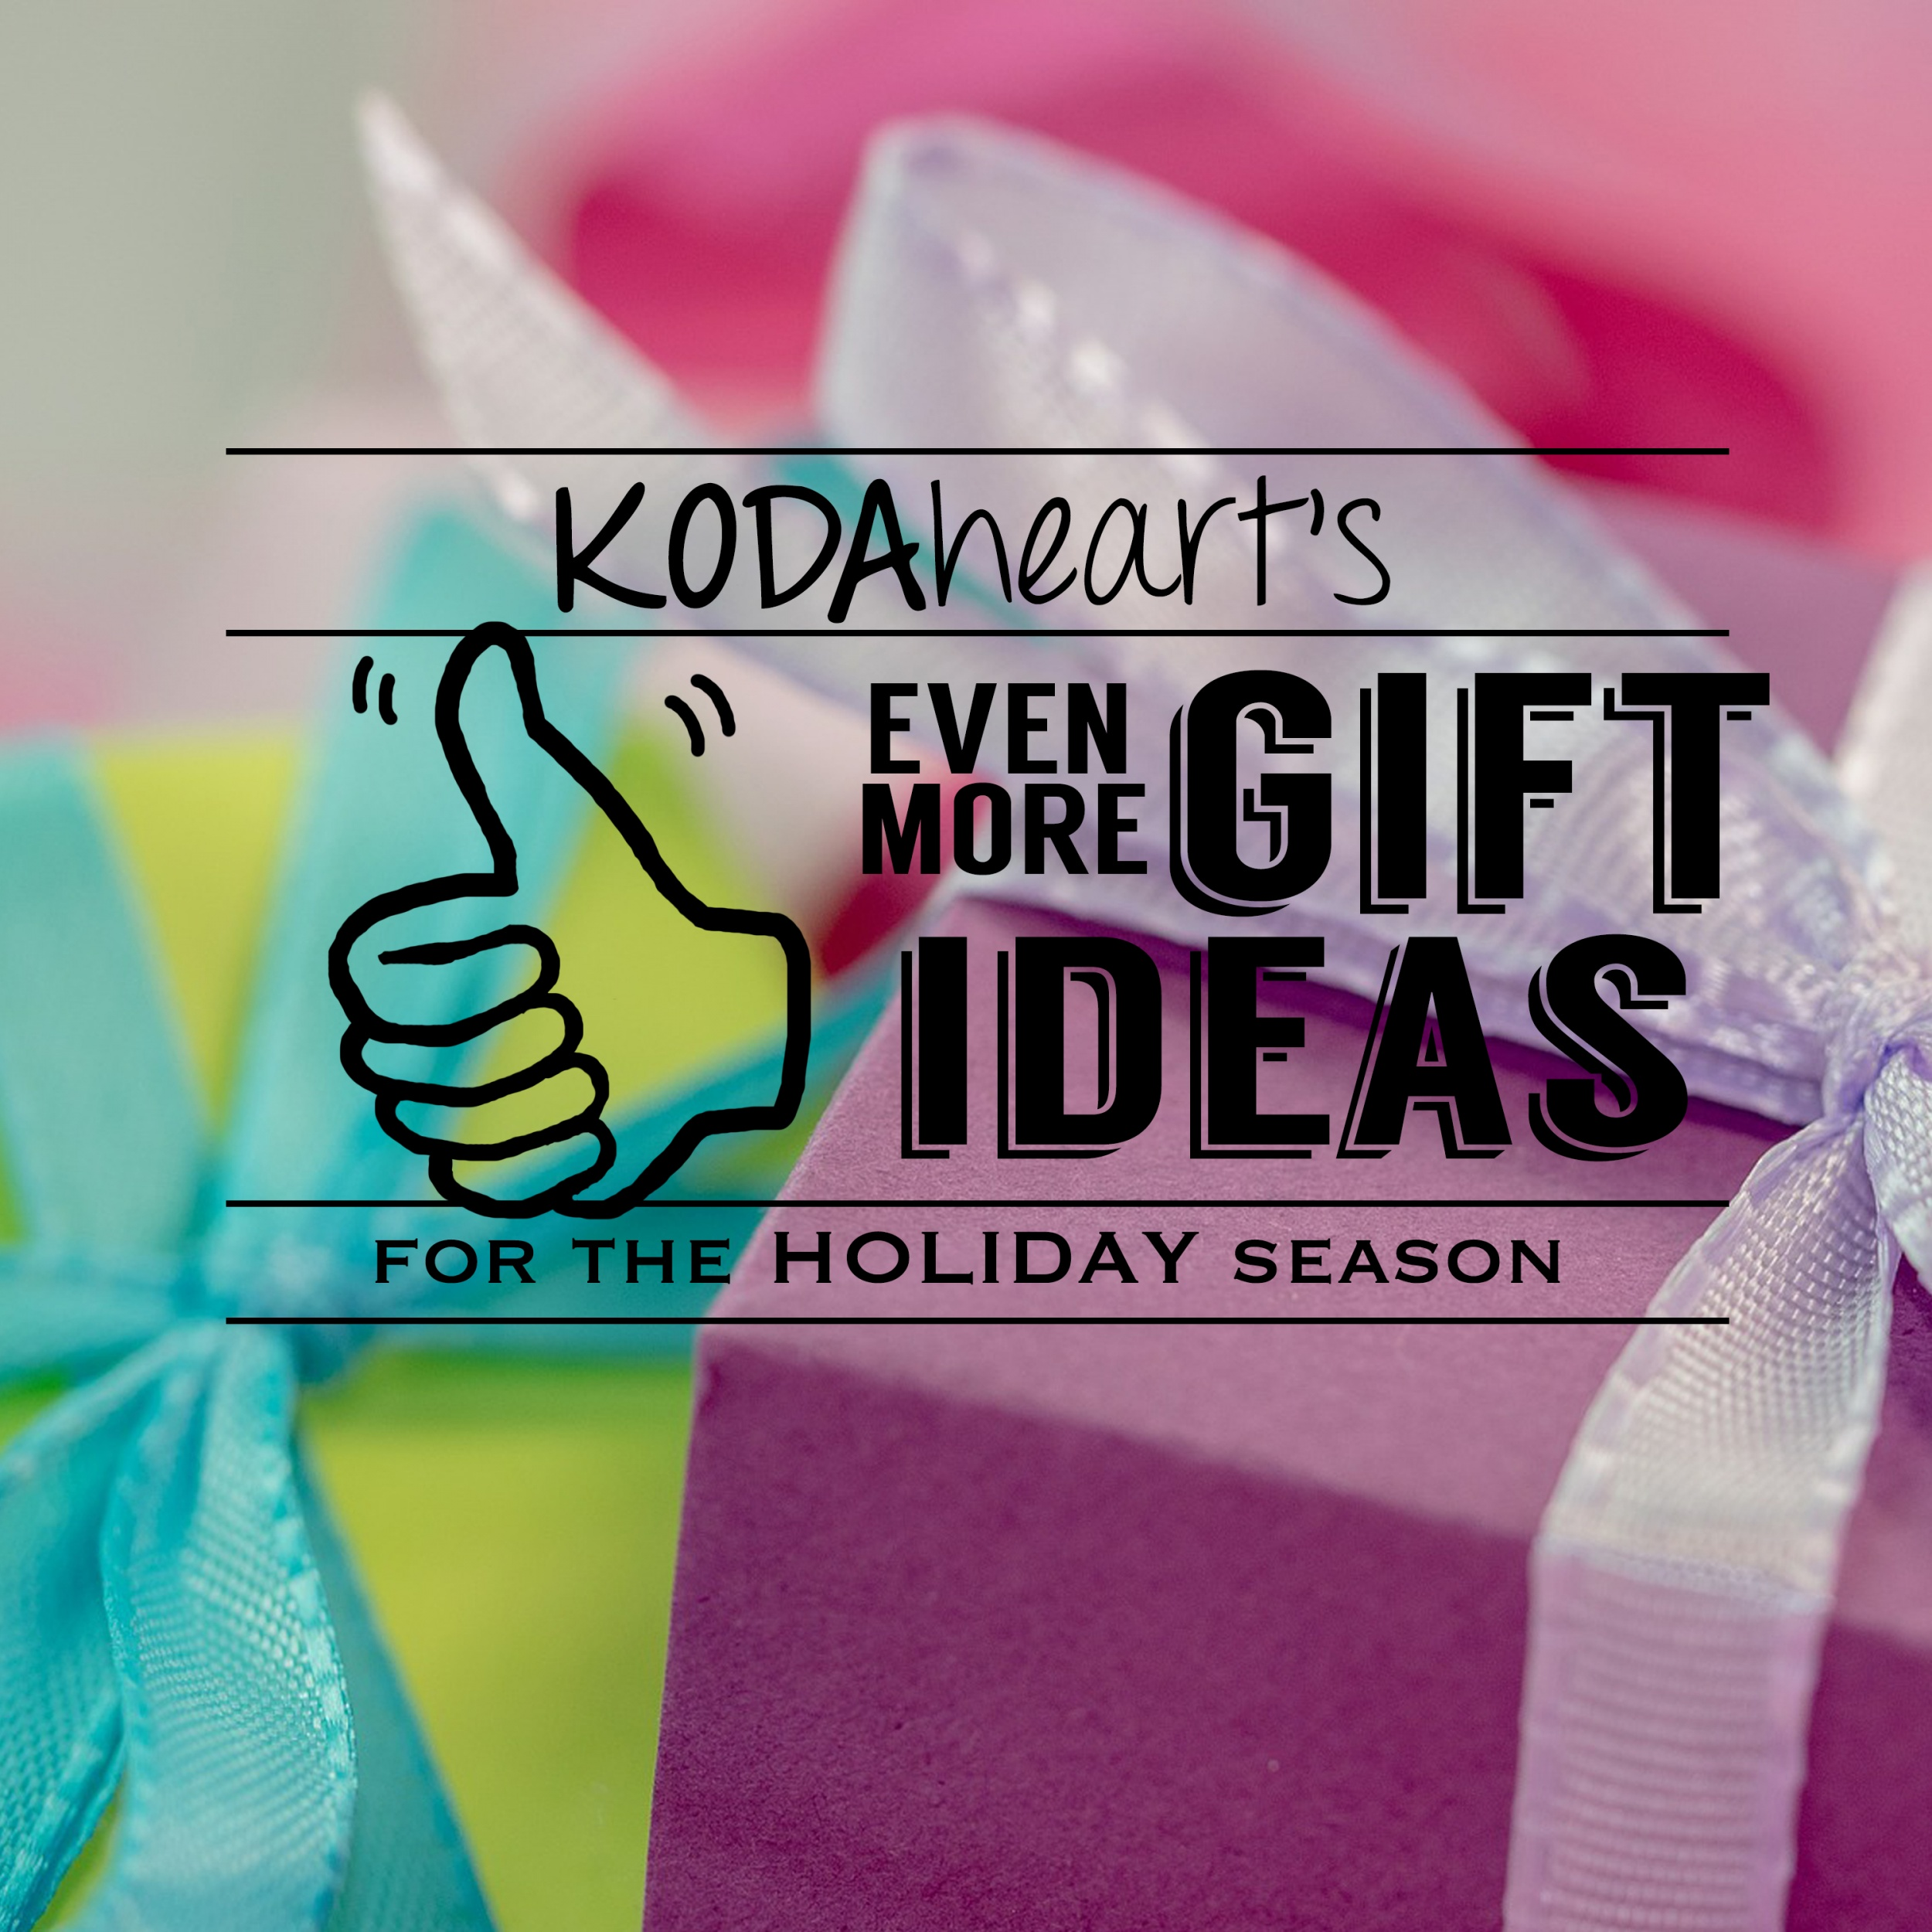 """[Image description: A thumb, outlined in black, signs """"10"""" with accompanying text that reads: """"KODAheart's [10] Even more gift ideas for the holiday season."""" In the background is a closeup colorfully wrapped boxes with ribbon bows.]"""